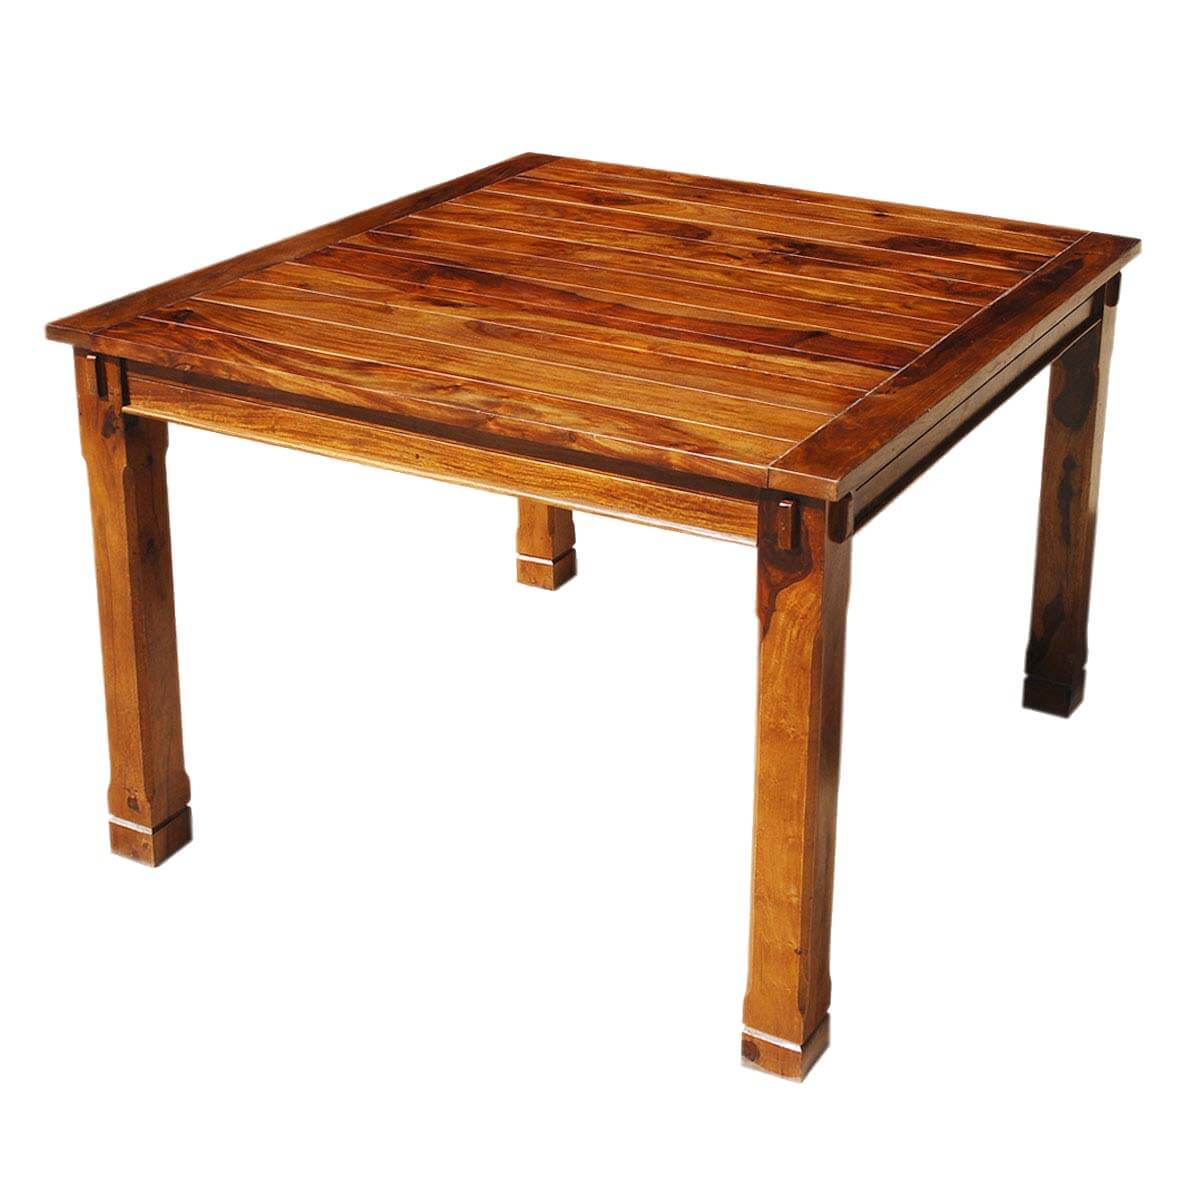 Rustic solid wood square counter height dining table for Breakfast table